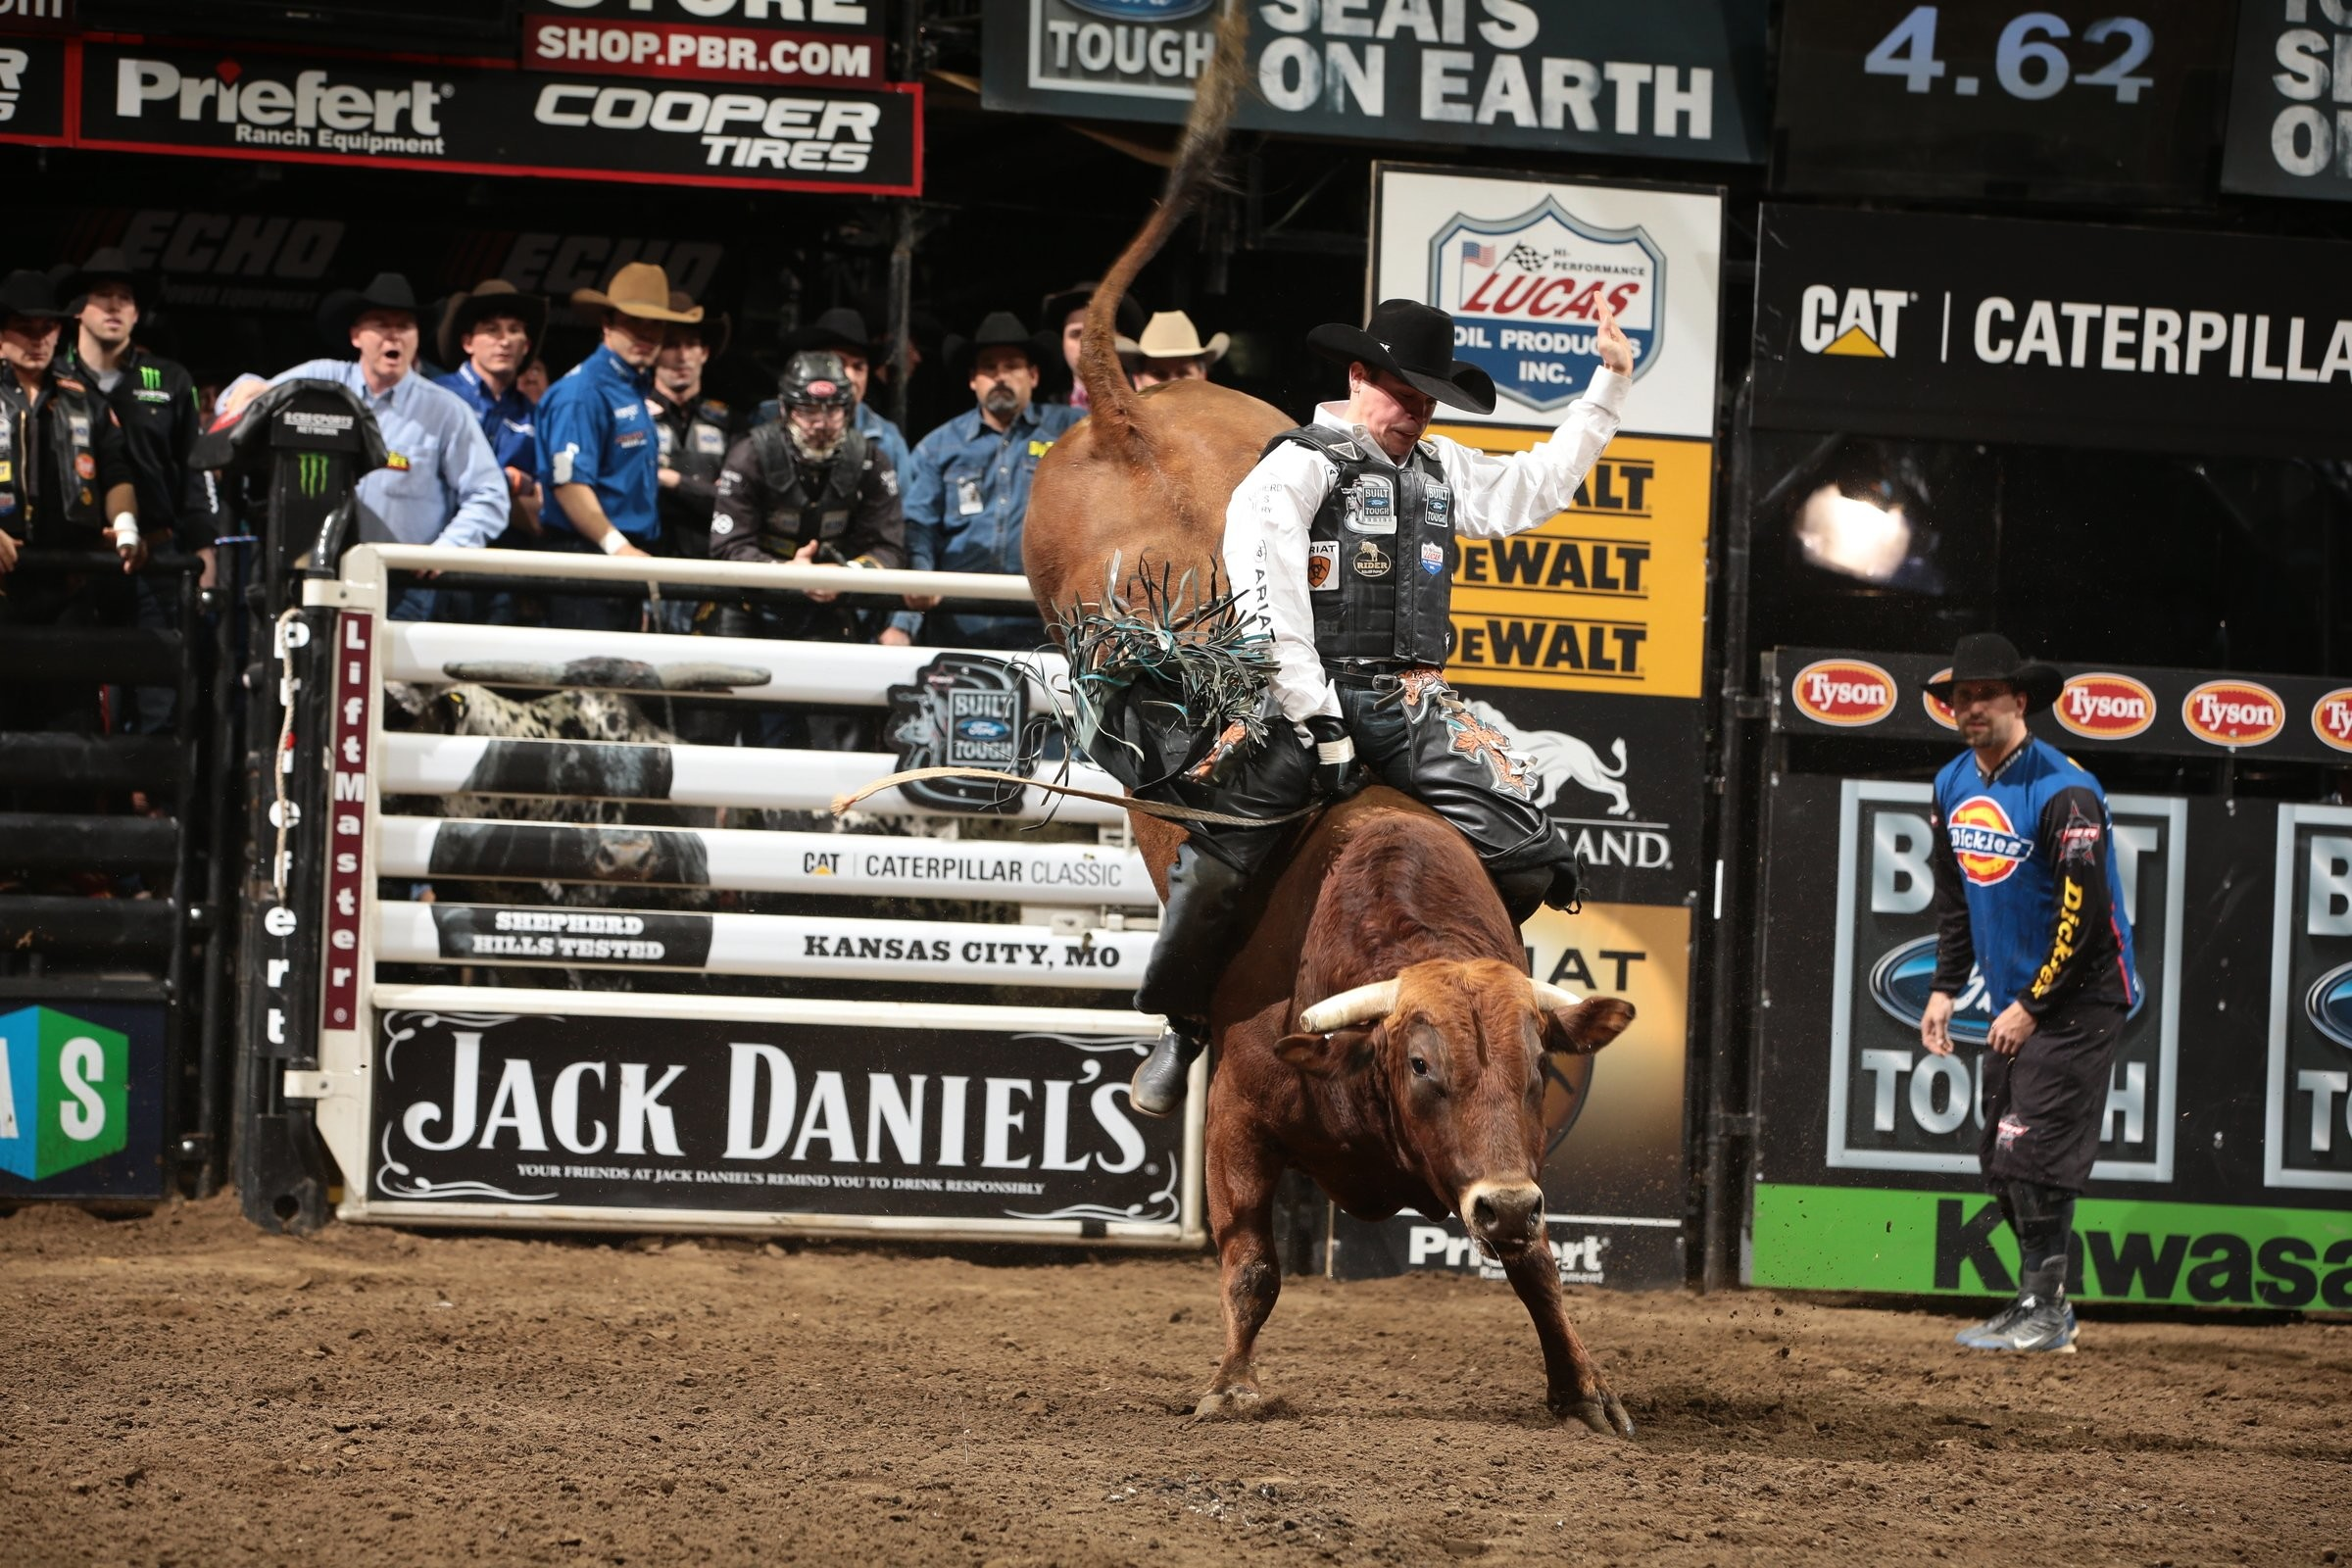 2400x1600 BULL RIDING bullrider cowboy western cow extreme rodeo d wallpaper |   | 823819 | WallpaperUP